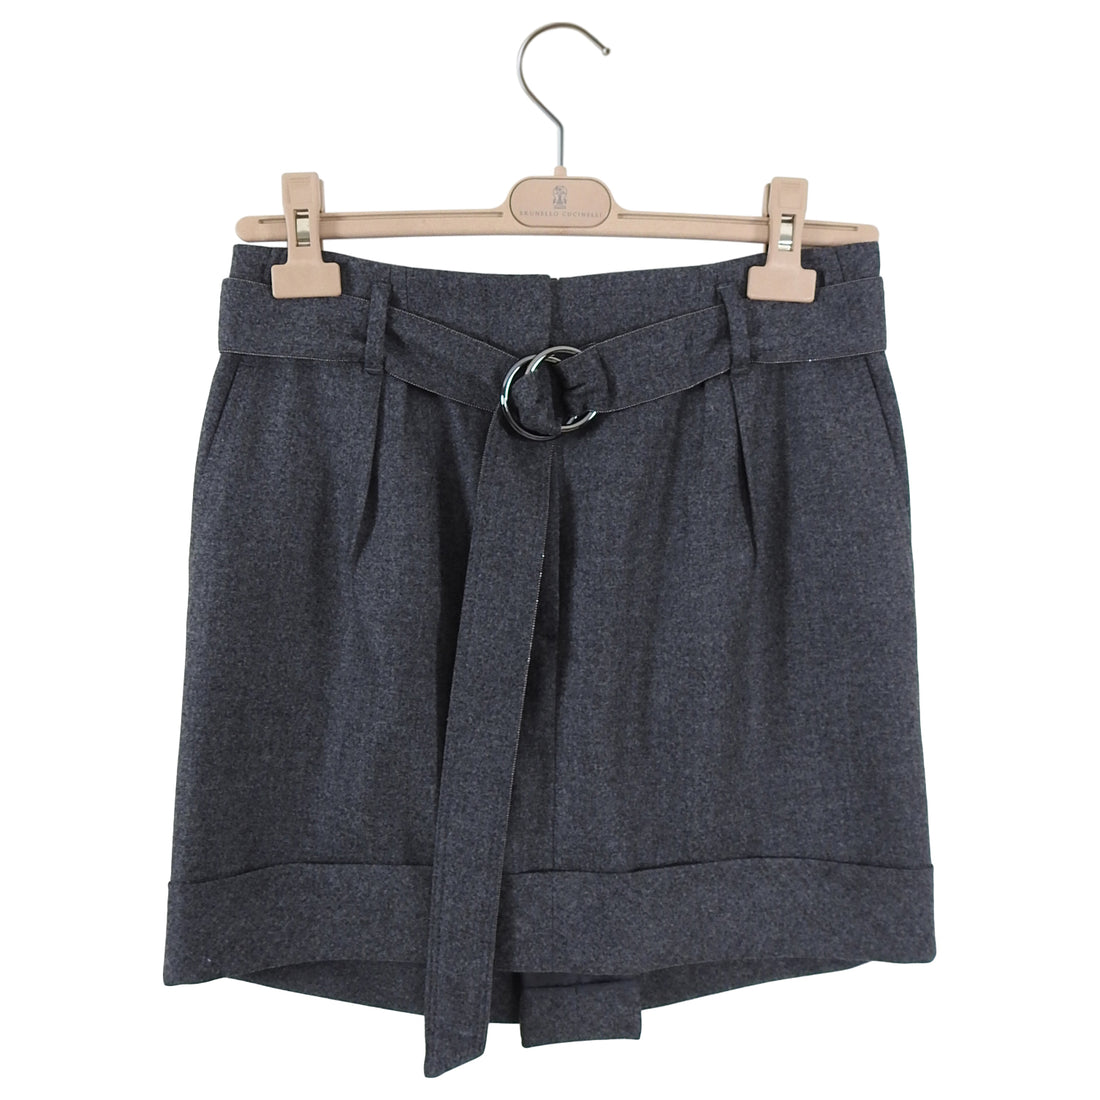 Brunello Cucinelli Grey Wool Short Skirt with Monili Bead Belt - S